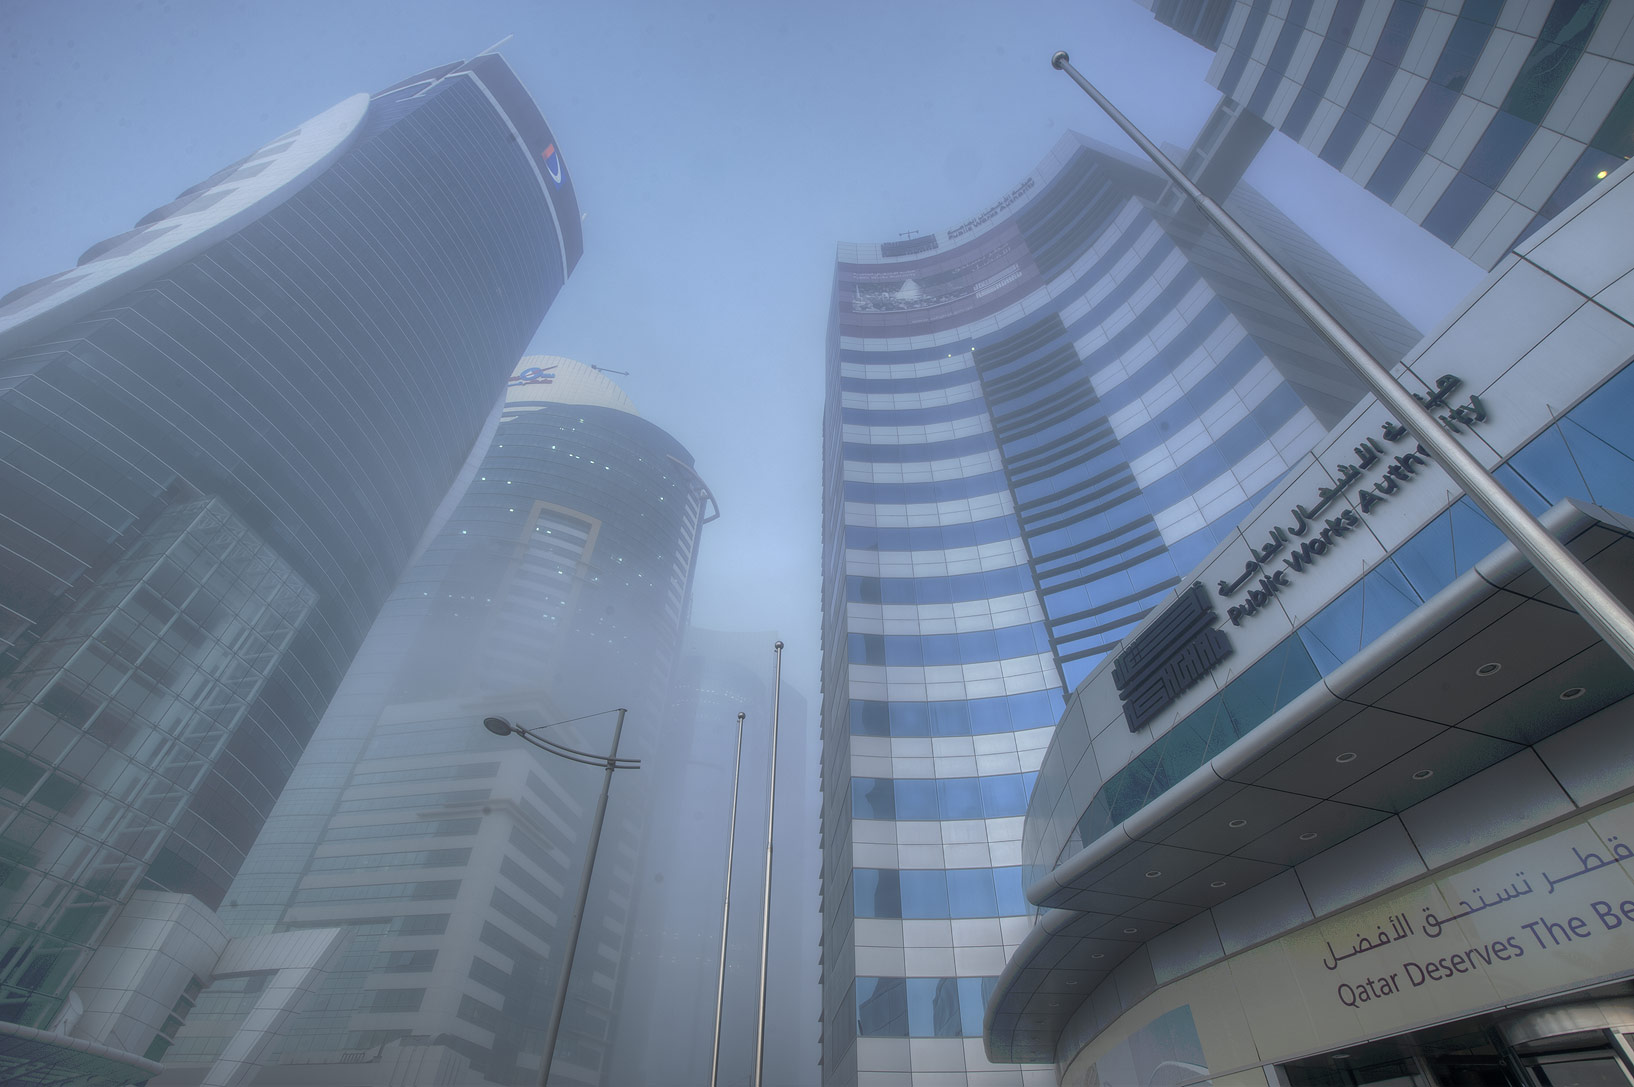 Area of Public Works Authority in West Bay in fog. Doha, Qatar